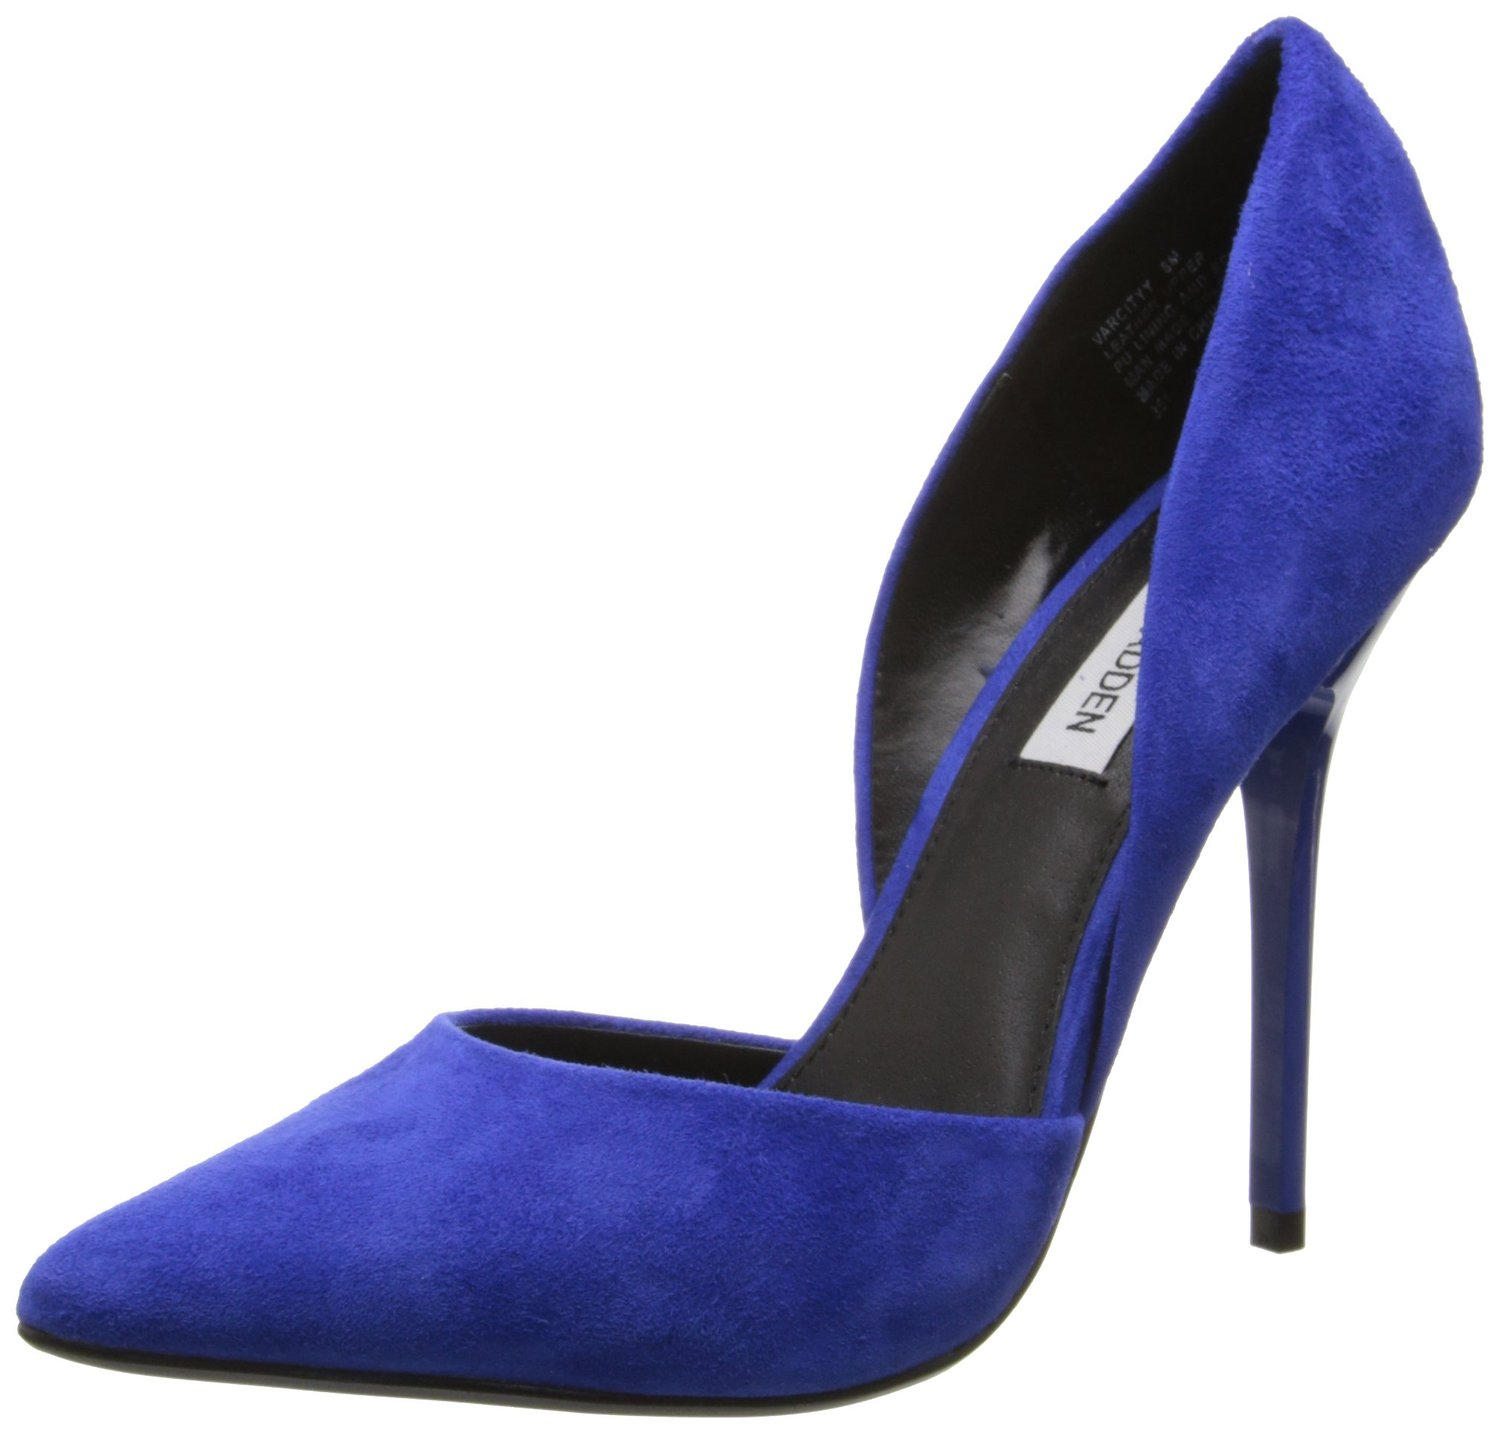 8262d767fc8 Steve Madden Varcityy Dress Pump Blue Suede